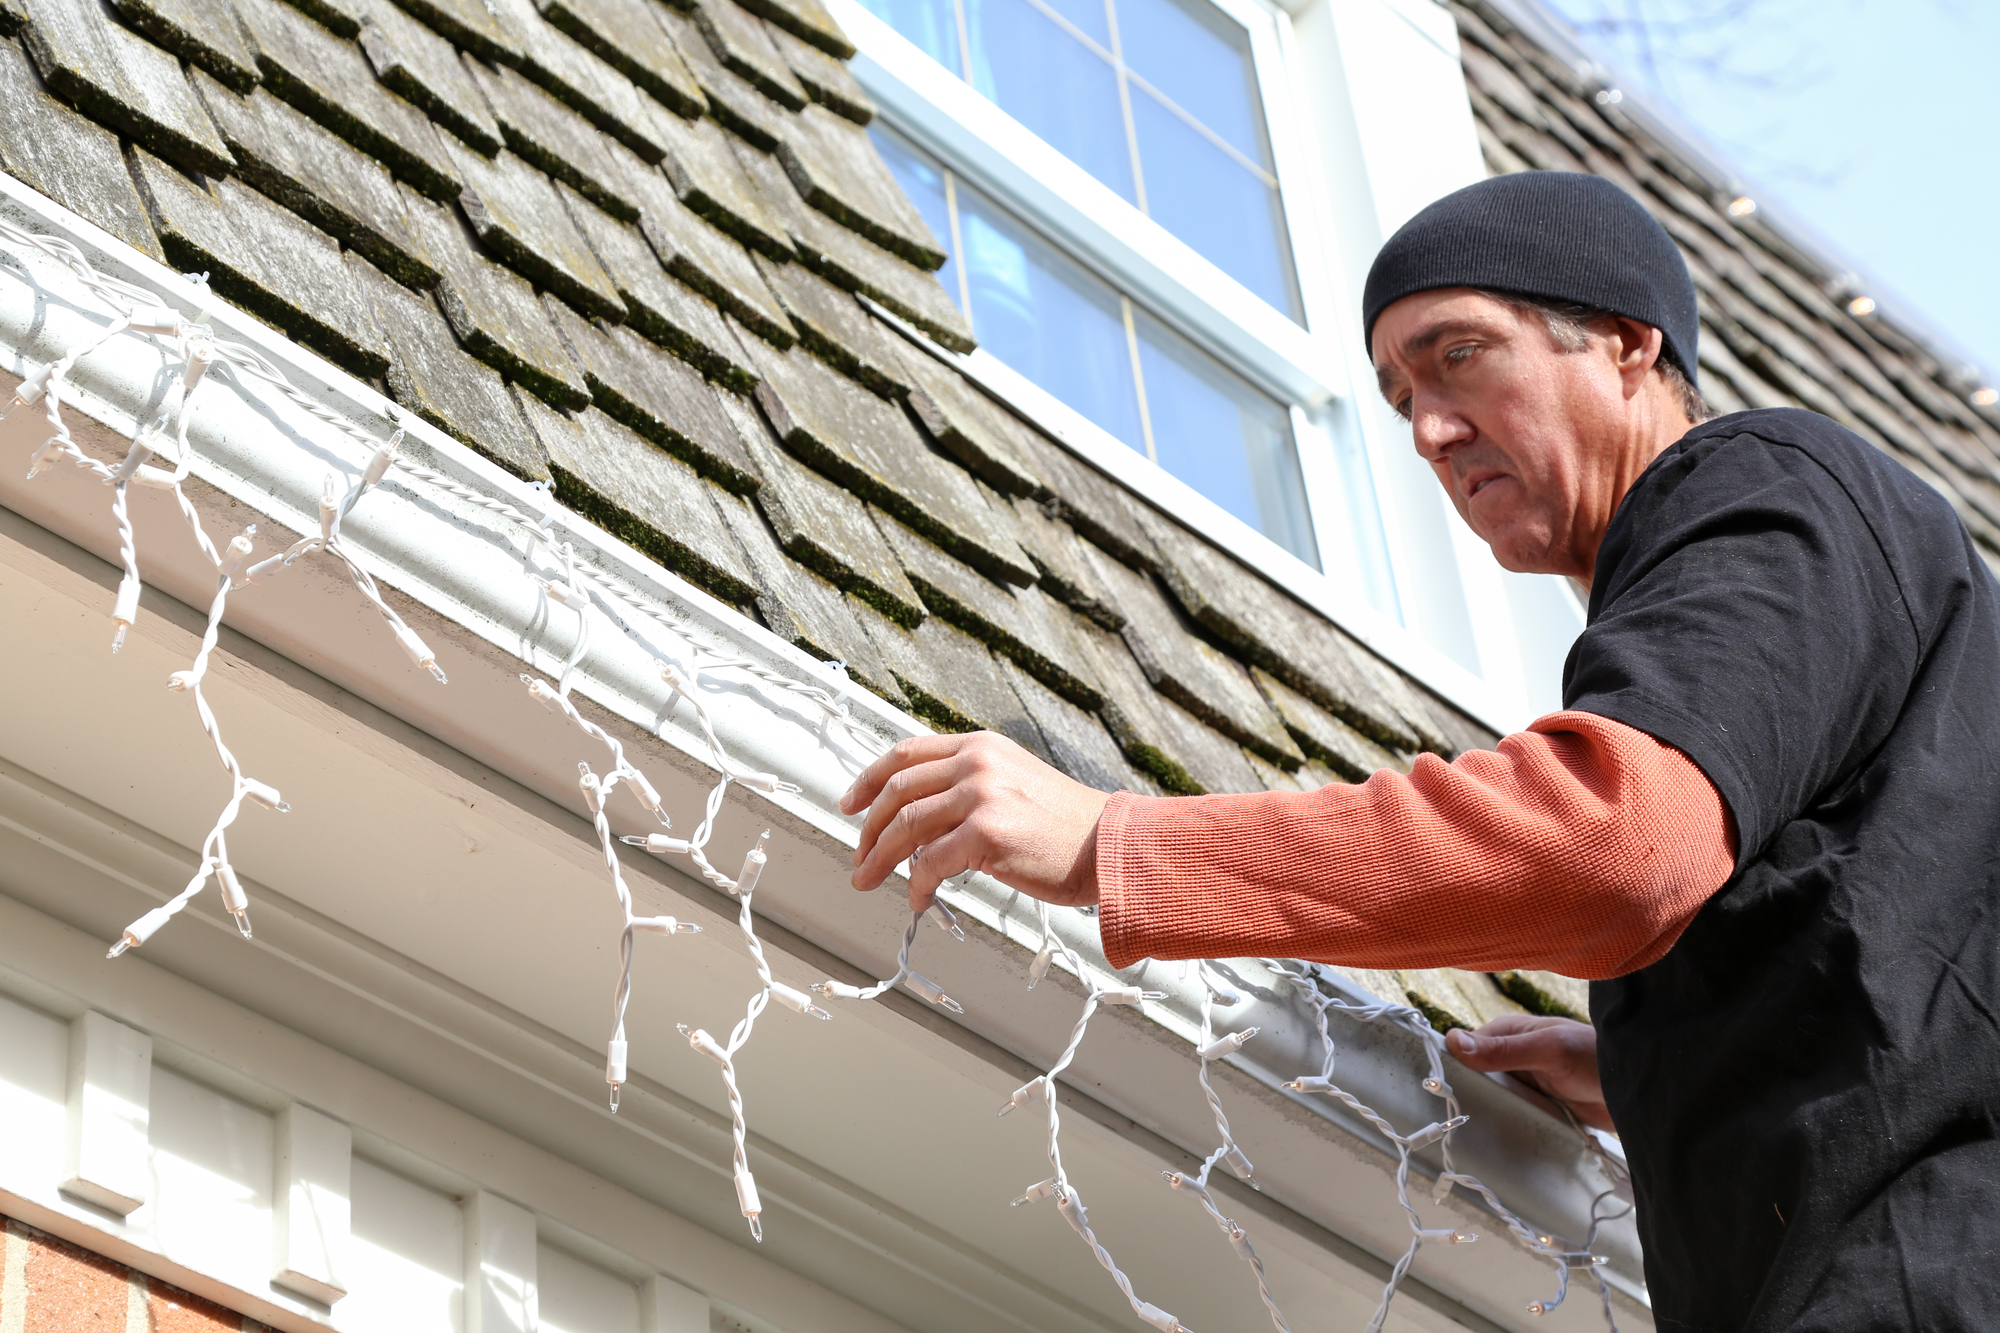 3 Tips For Hanging Decorations Without Damaging Your Gutters